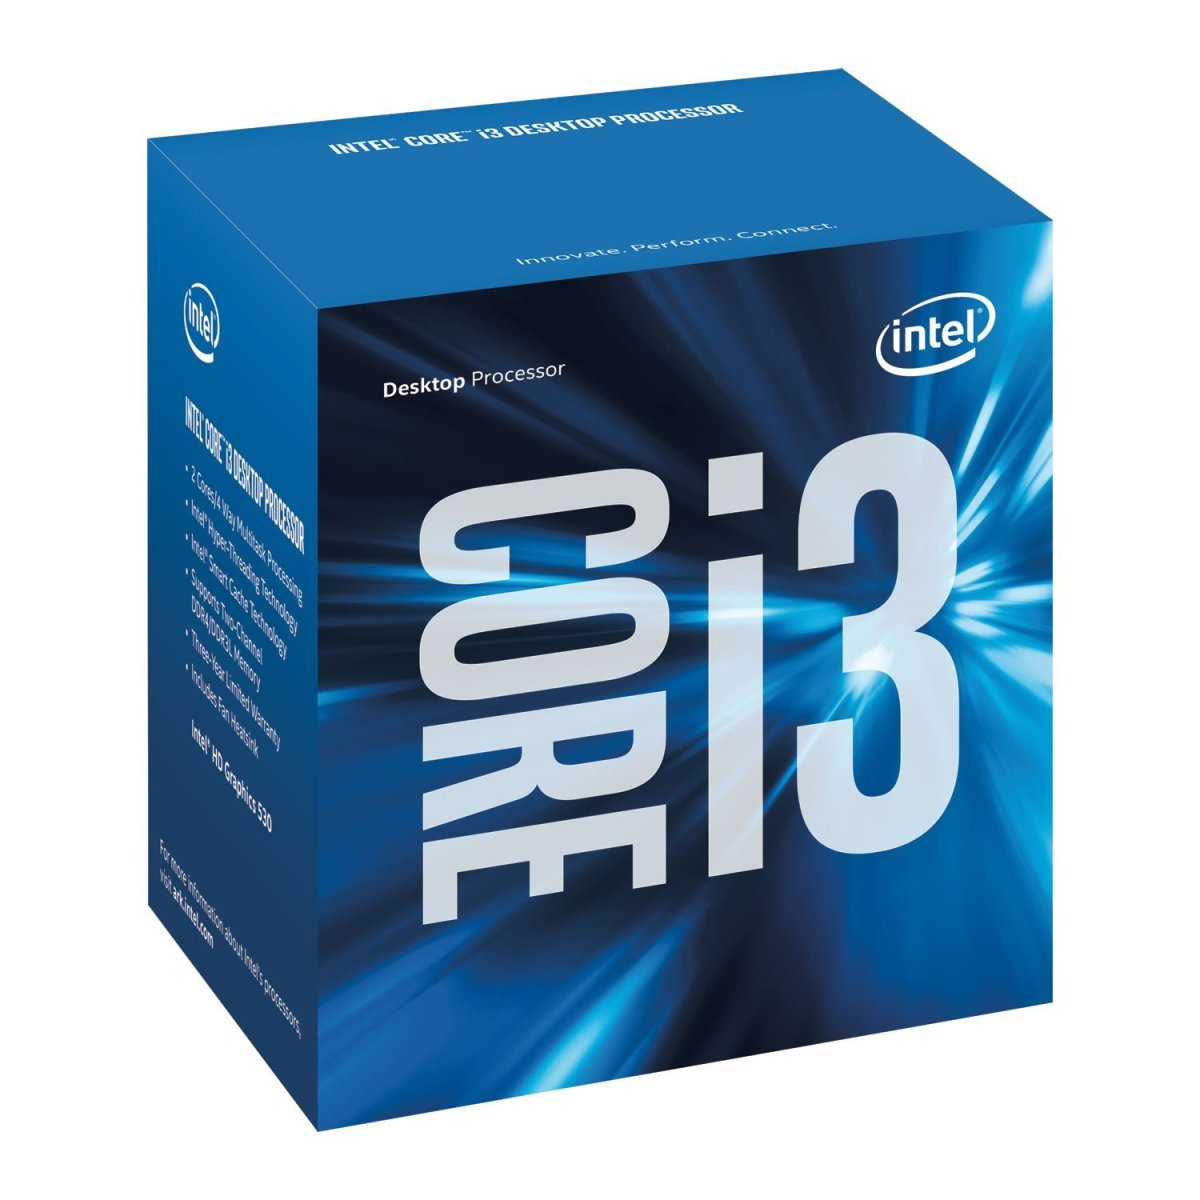 The i3-6100 makes gains vs. Intel's previous Haswell i3 processors and comes in at a similar price.